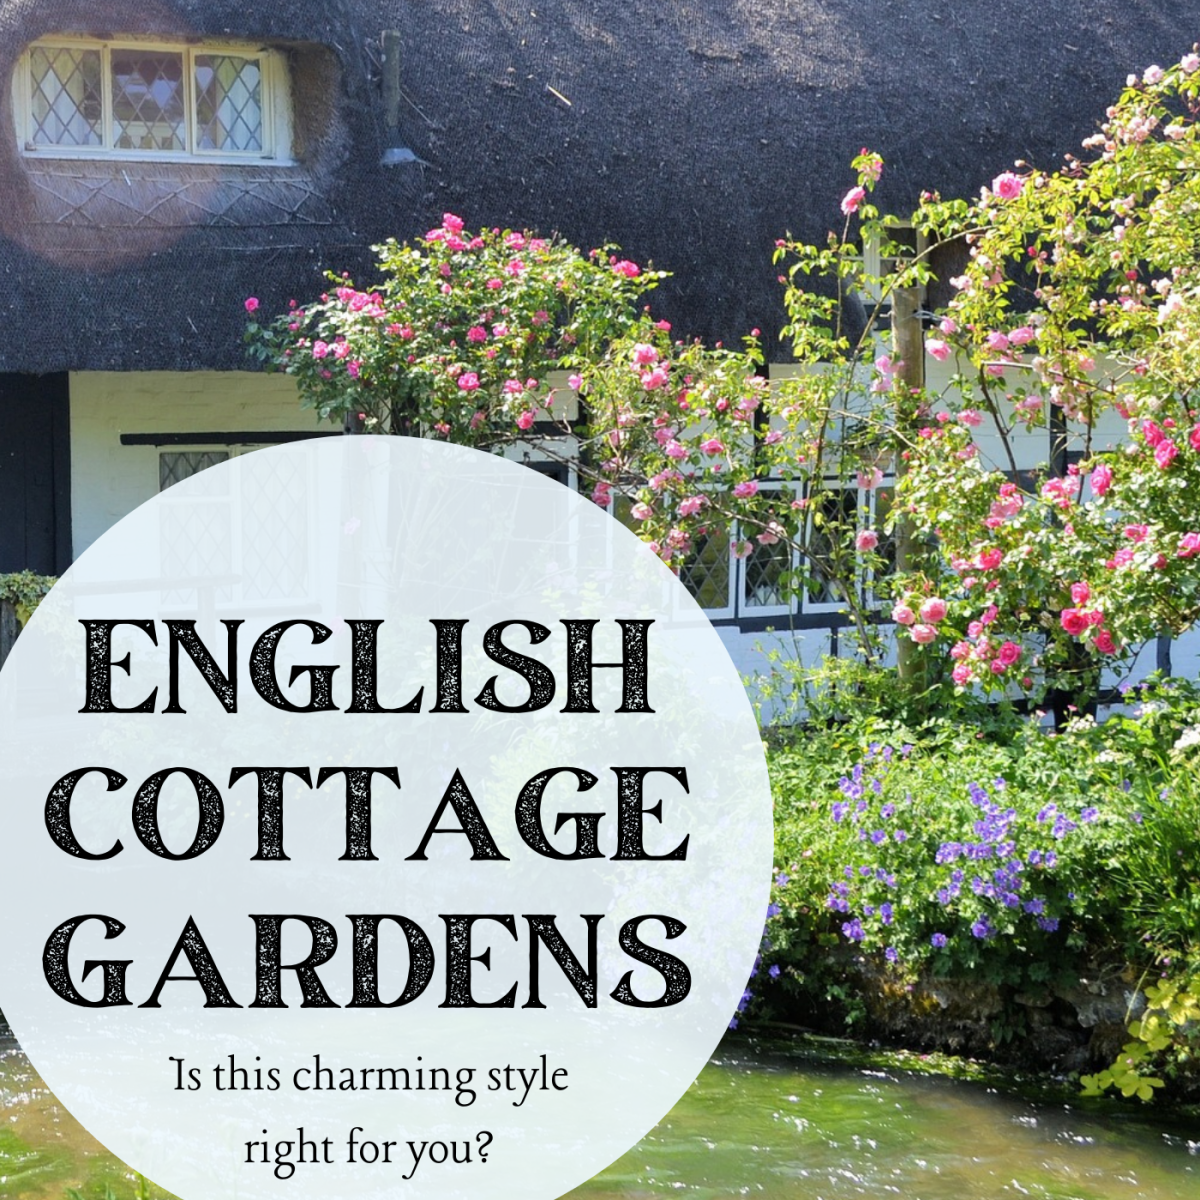 How to Decide If an English Cottage Garden Is Right for You